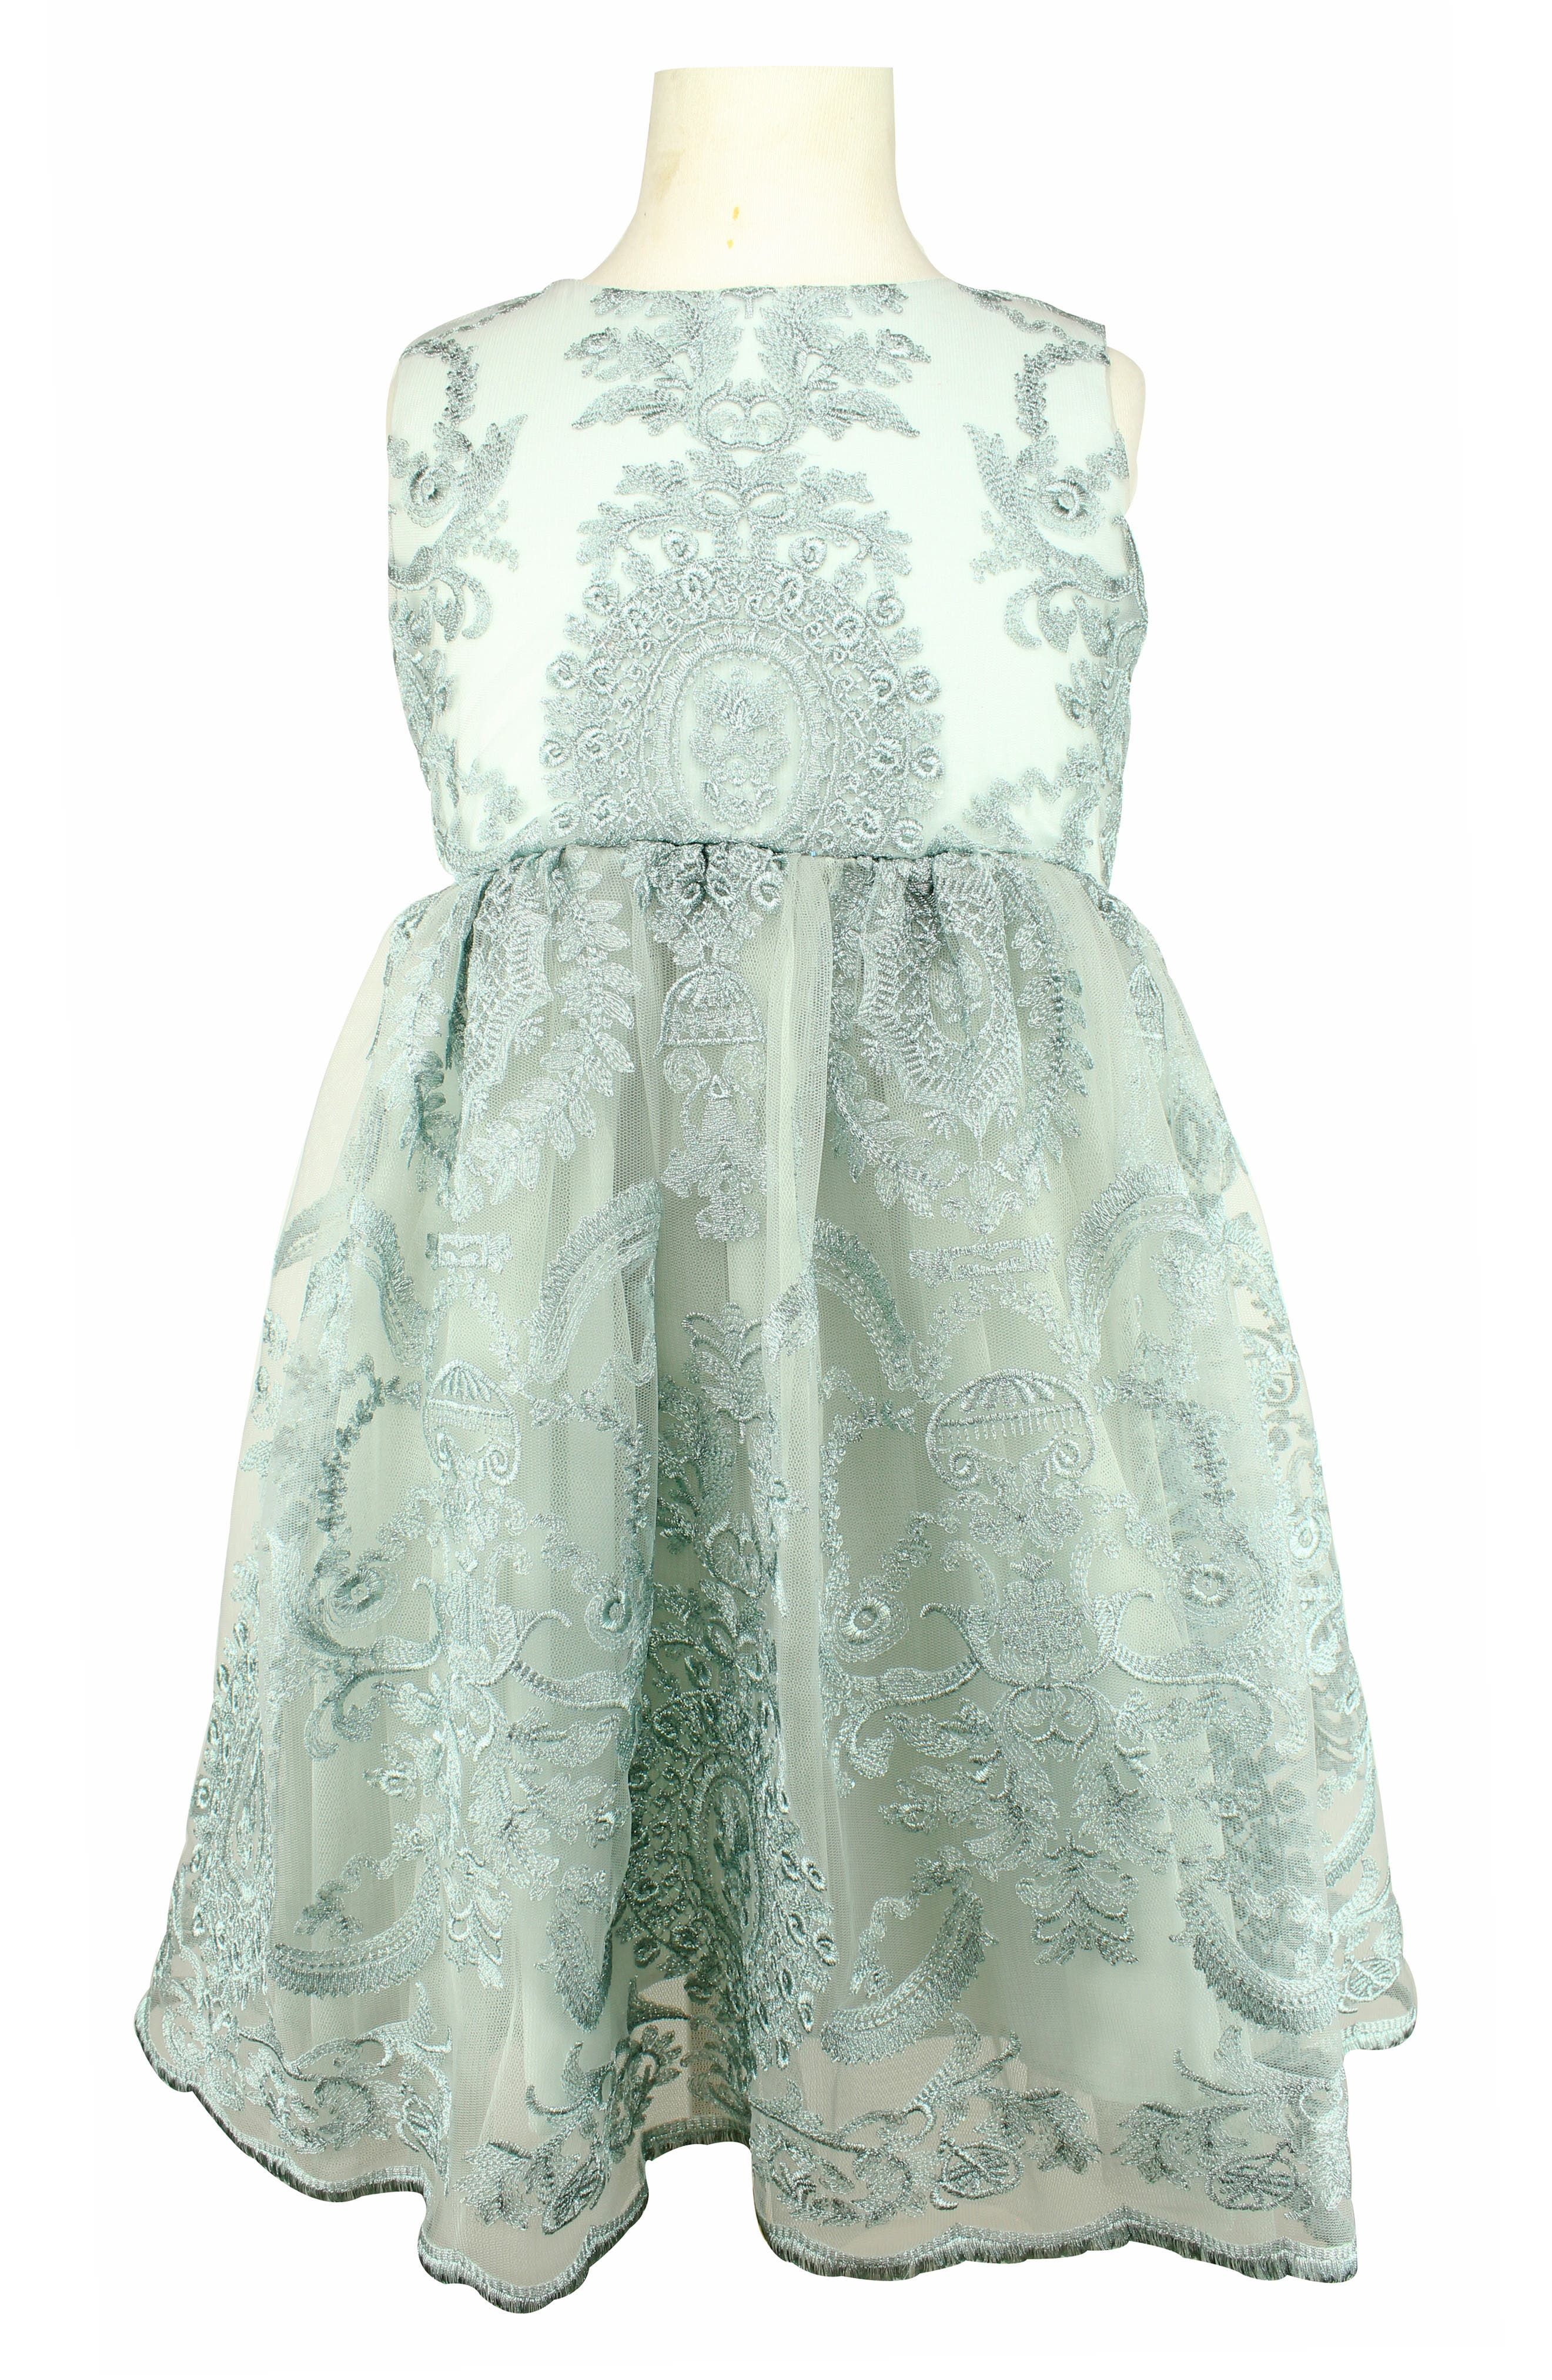 POPATU, Embroidered Tulle Dress, Main thumbnail 1, color, BLUE